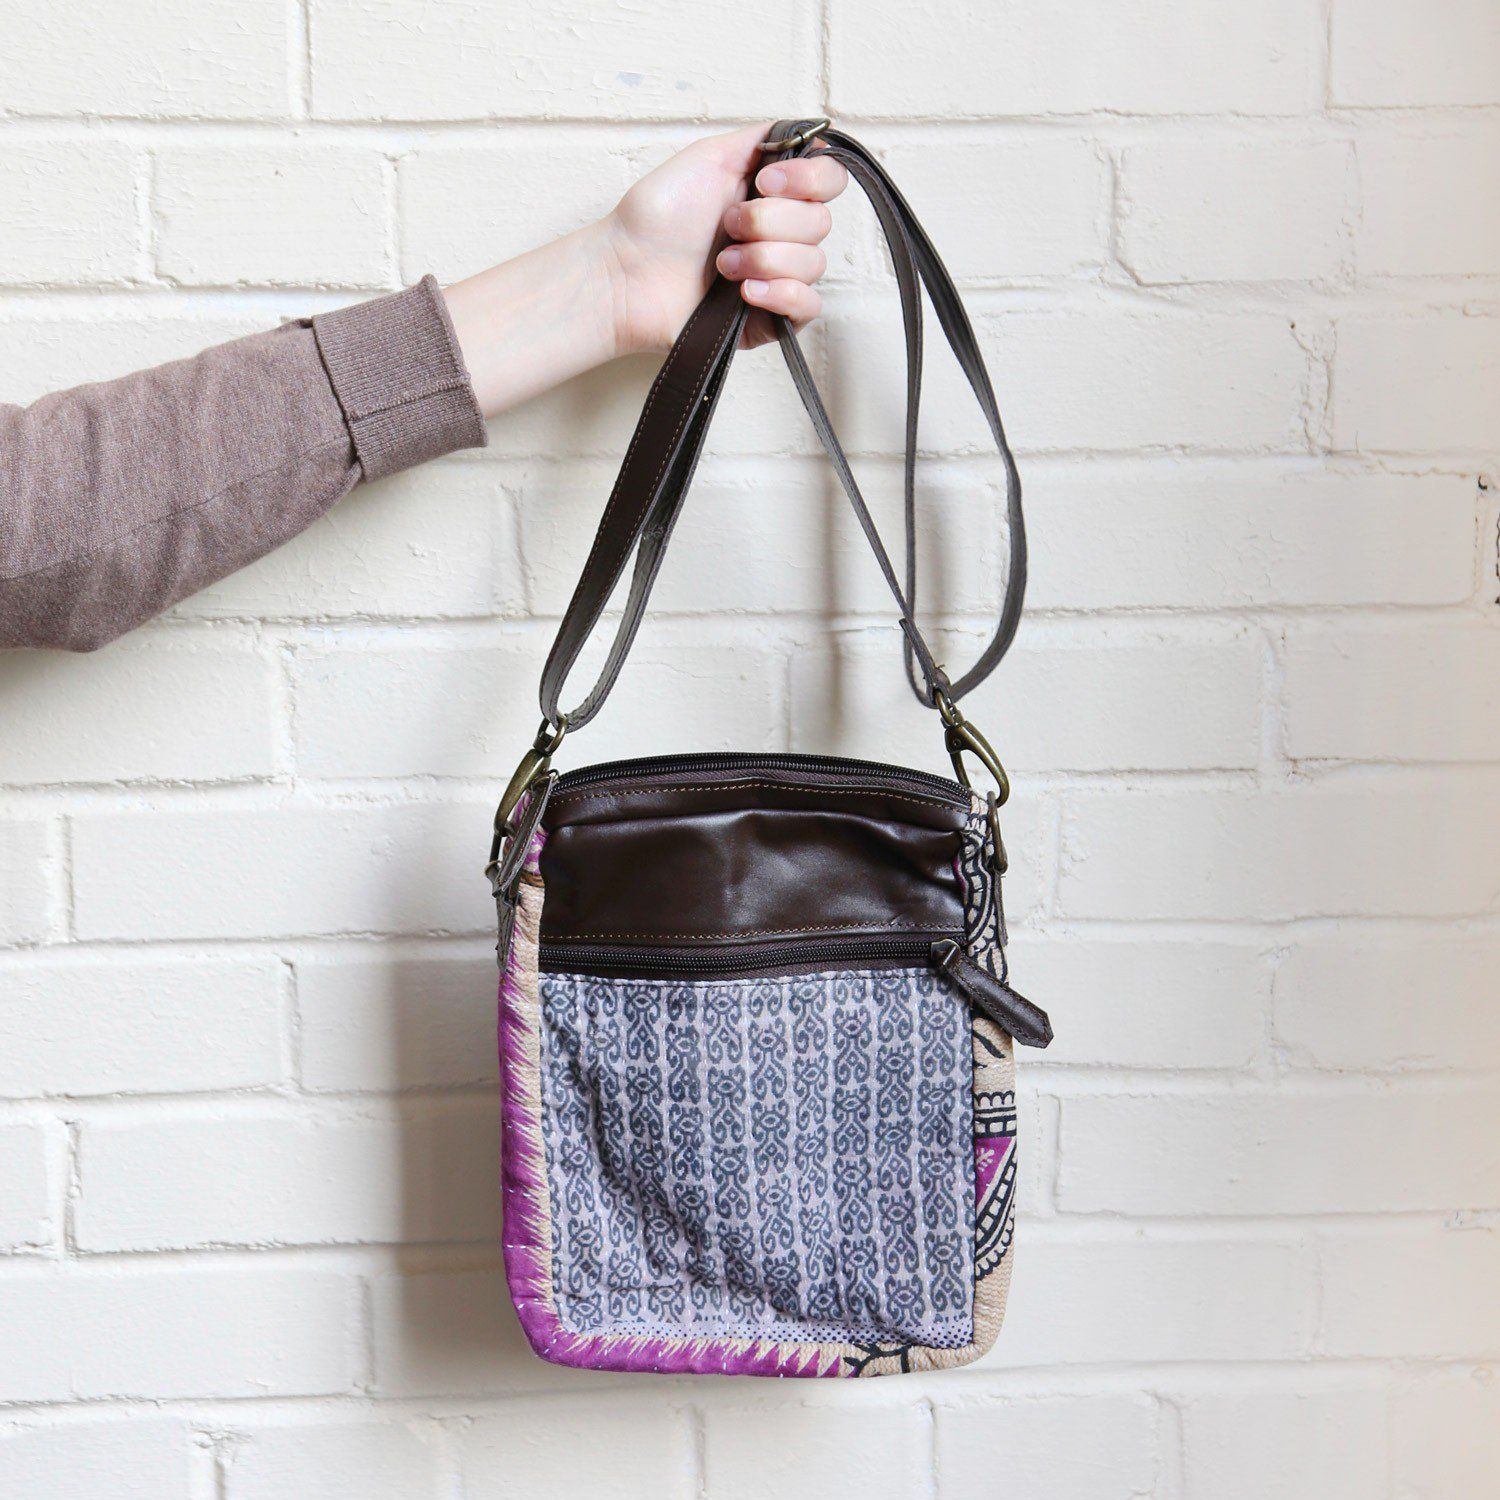 e8d15bd384a6 Recycled Sari Fabric    Purse    Handmade Slow Fashion    Sustainable Style     Eco-Friendly    Fair Trade    Ethical